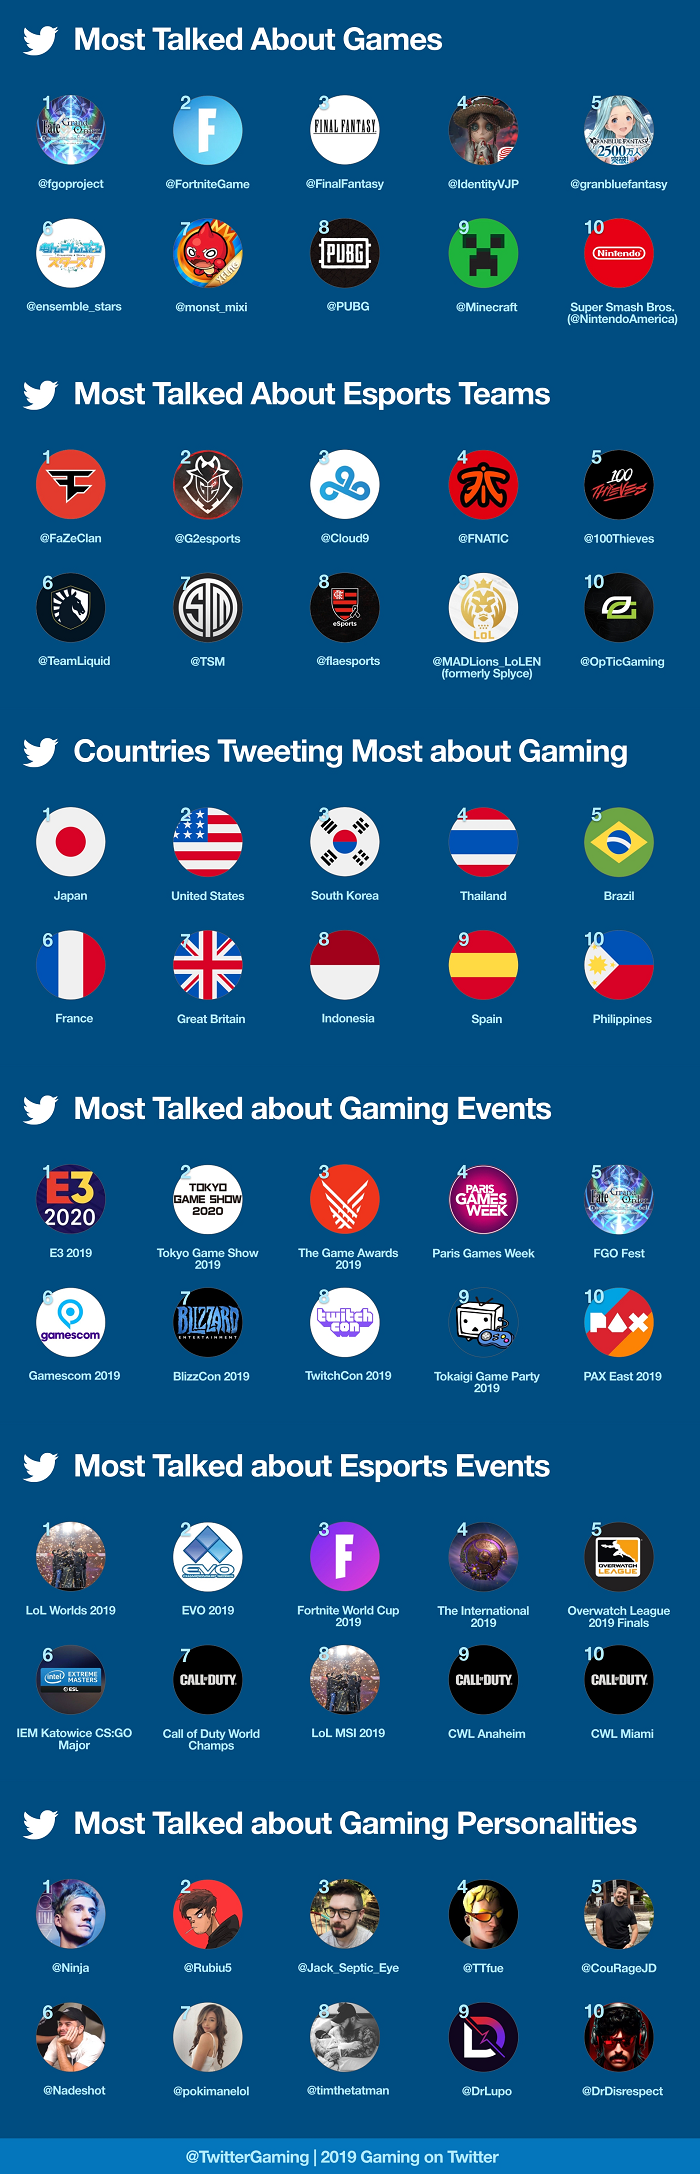 Listing of key gaming trends on Twitter